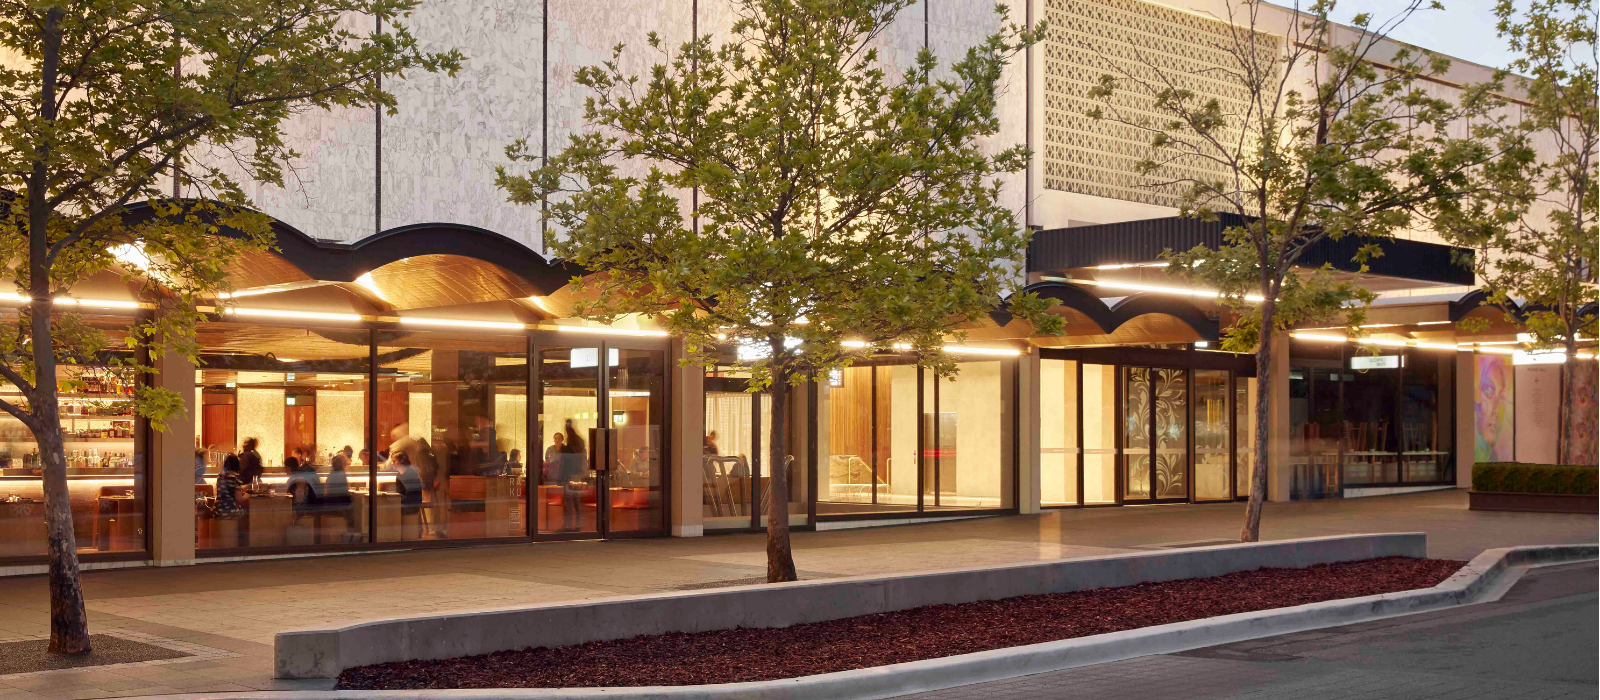 Monaro Mall by Mather Architecture. Photo: Supplied.